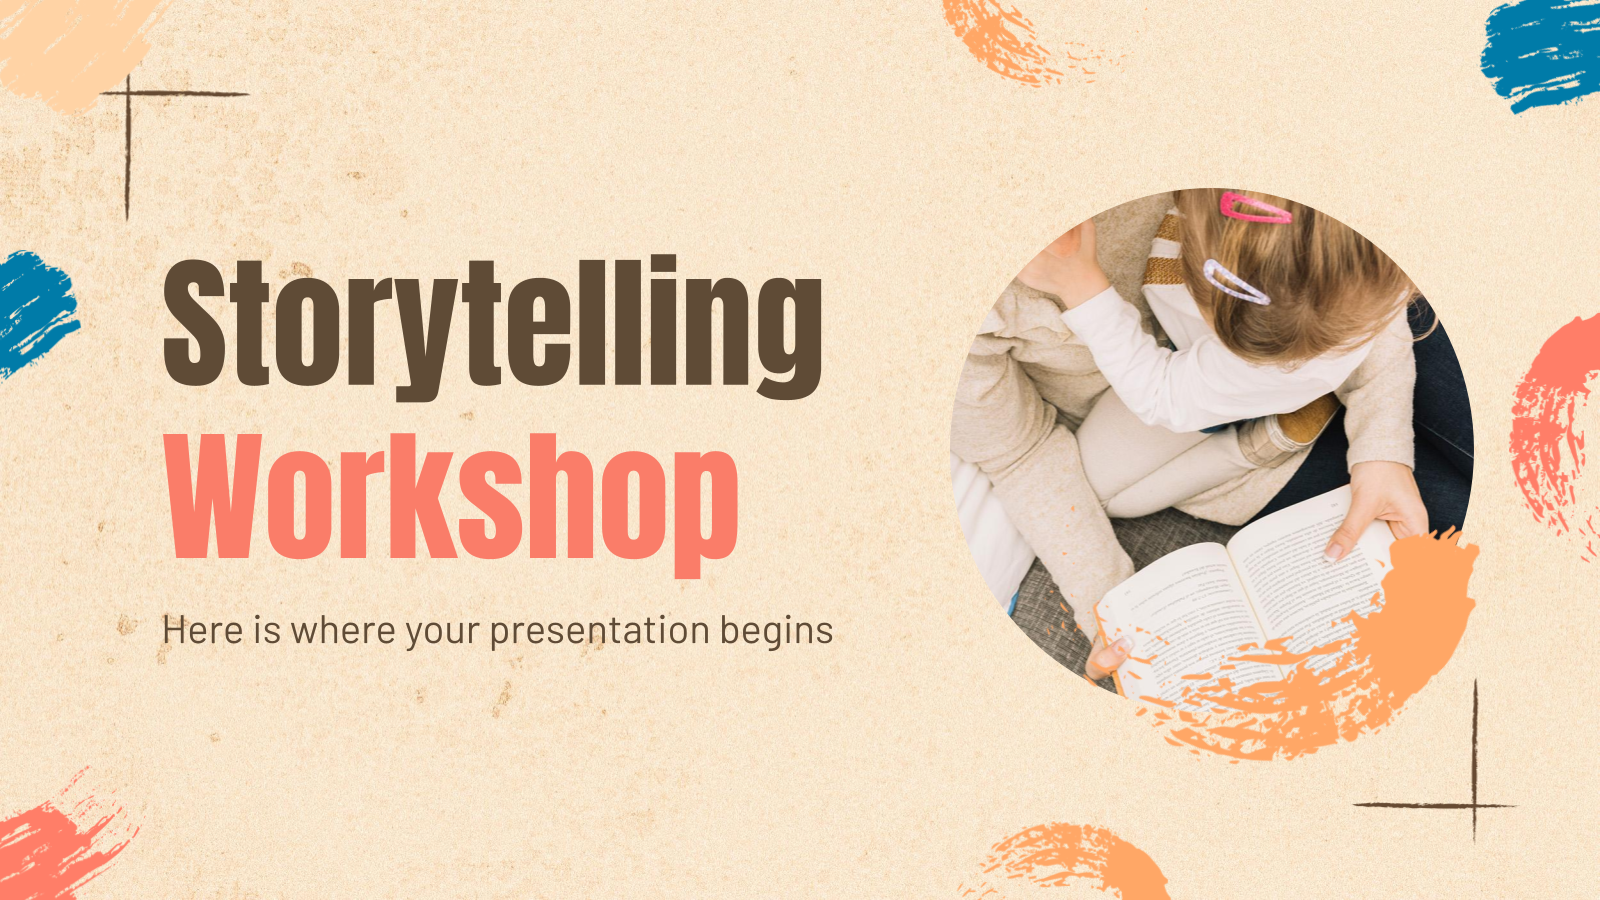 Storytelling Workshop presentation template